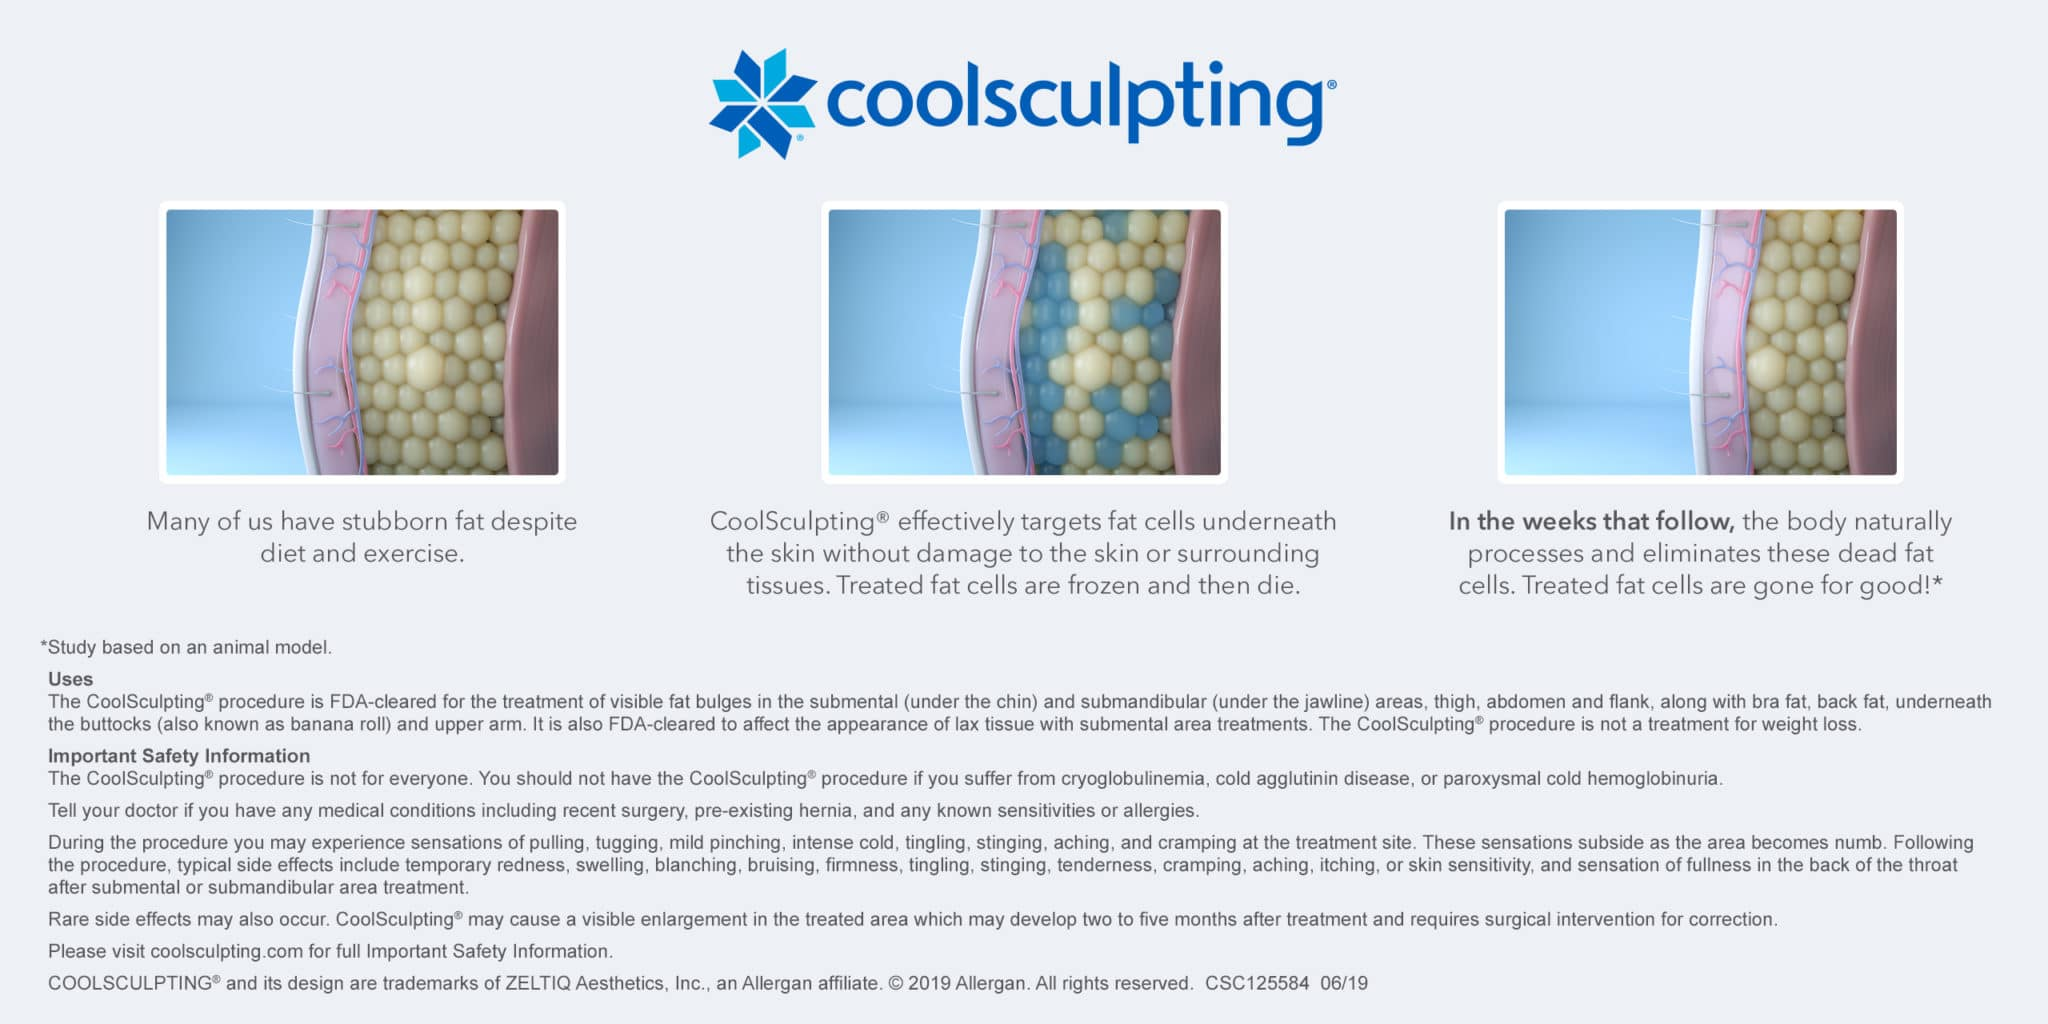 Coolsculpting illustration - How it works